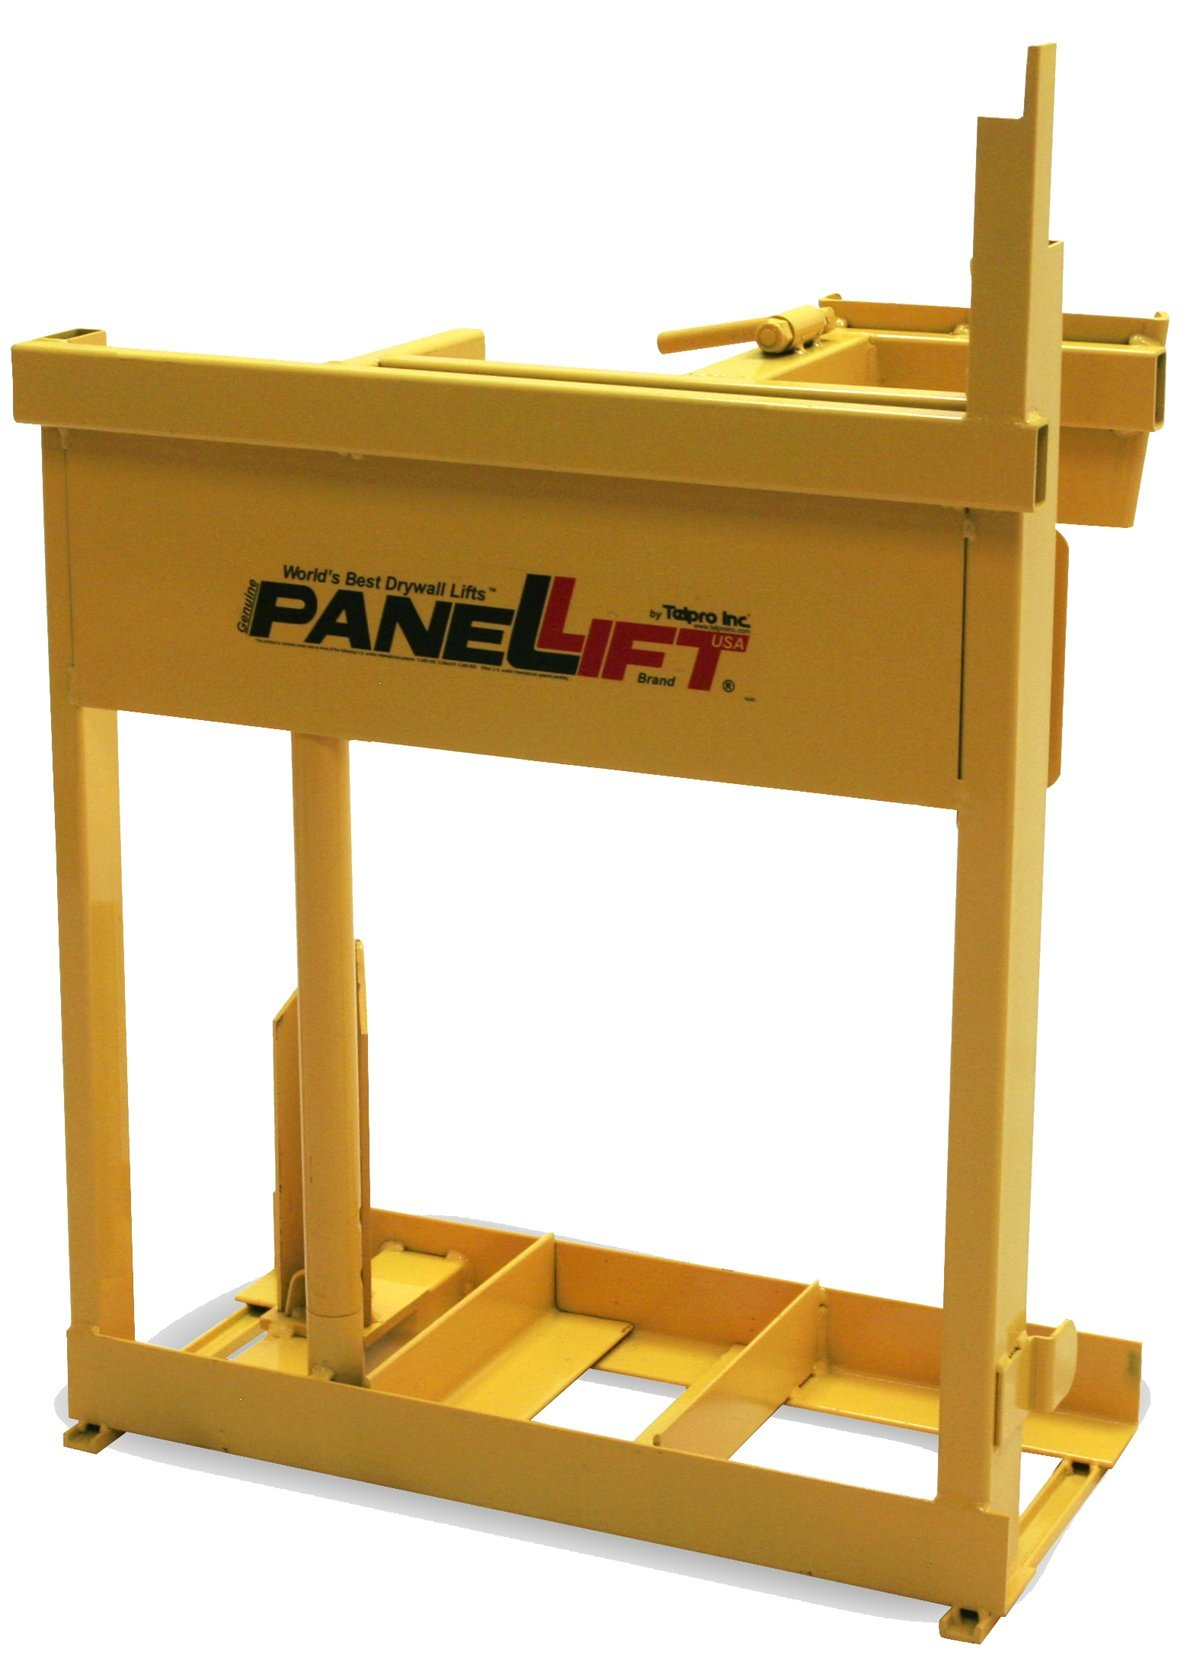 PanelLift 117 Drywall Lift Storage Stand